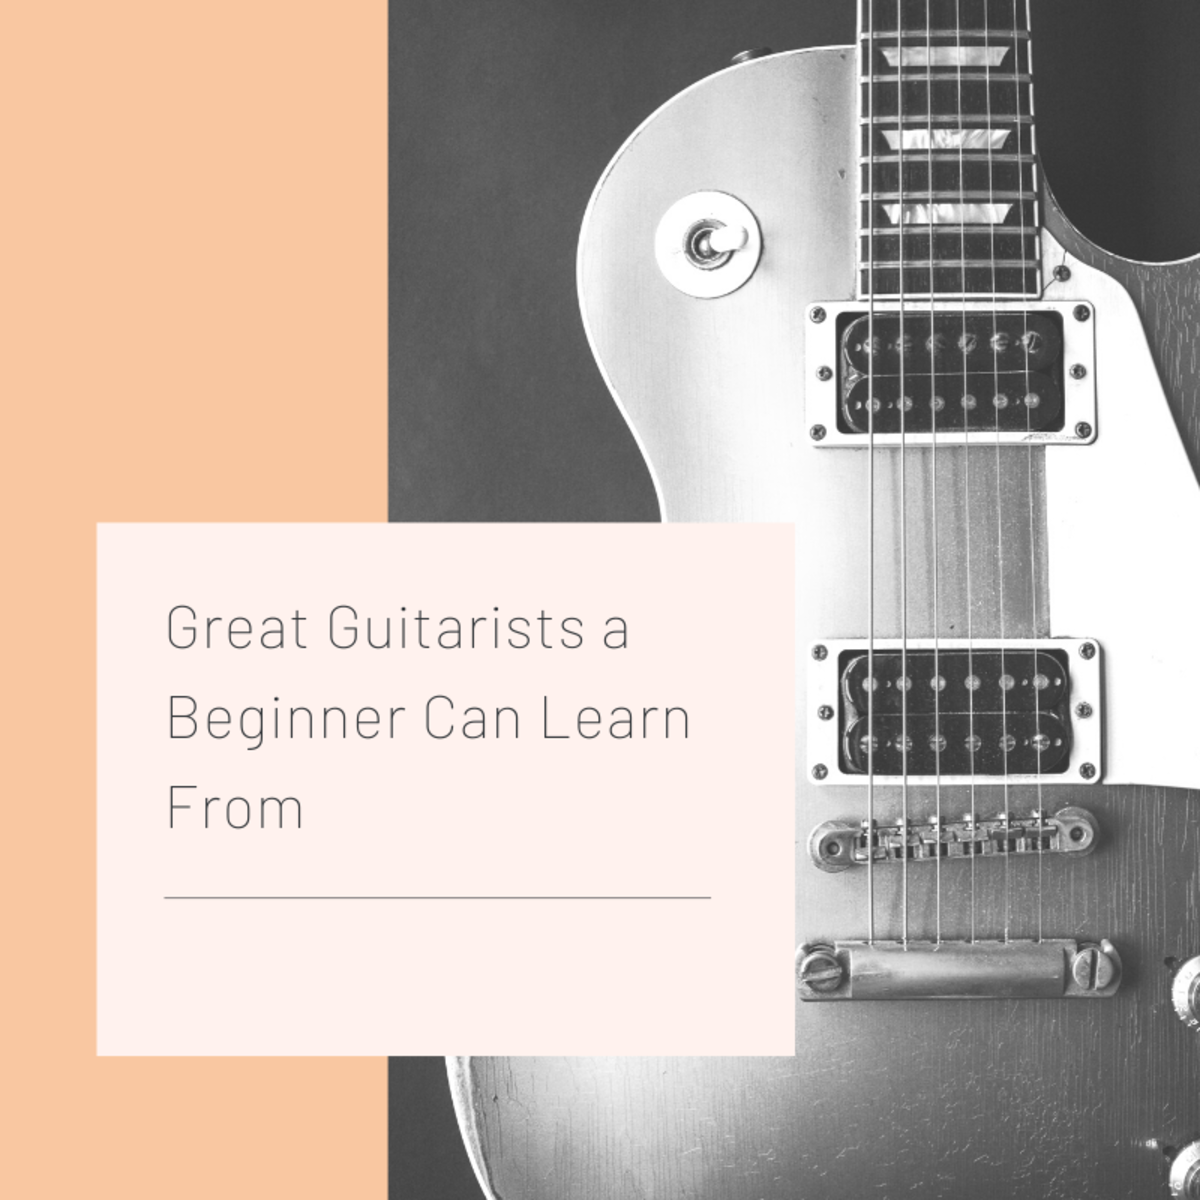 These guitarists are great for any novice to learn from.